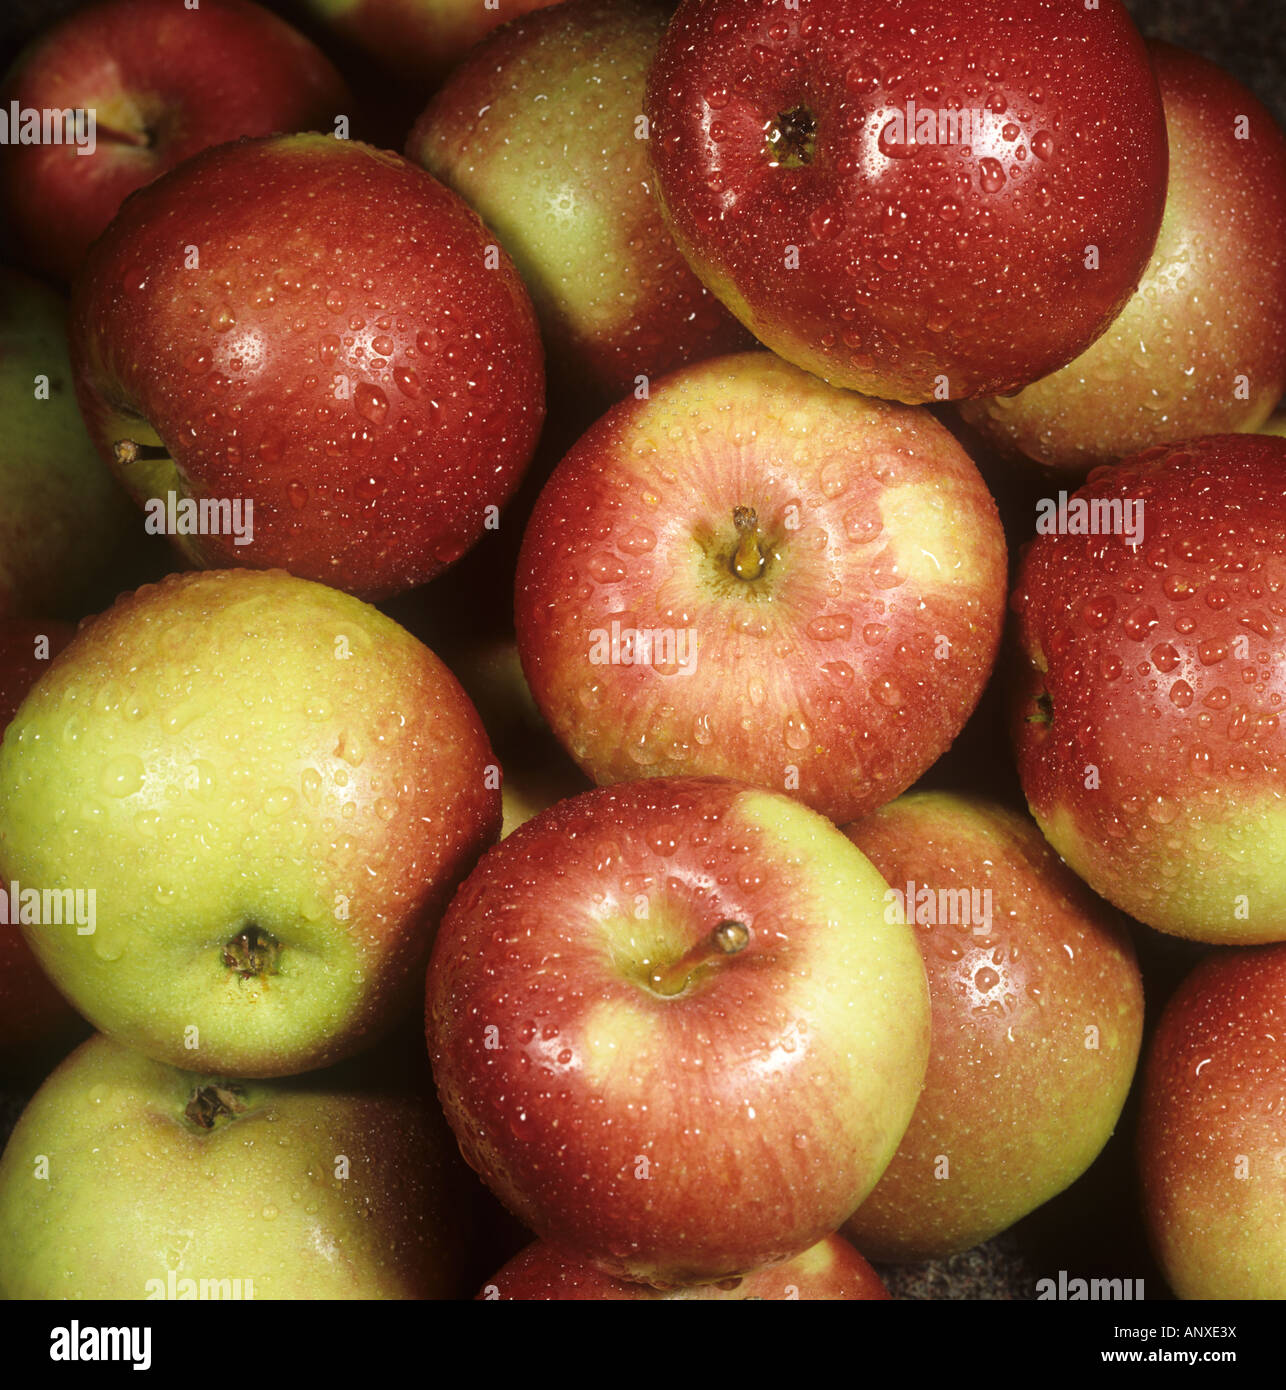 Harvested Canadian apples as bought from a supermarket - Stock Image